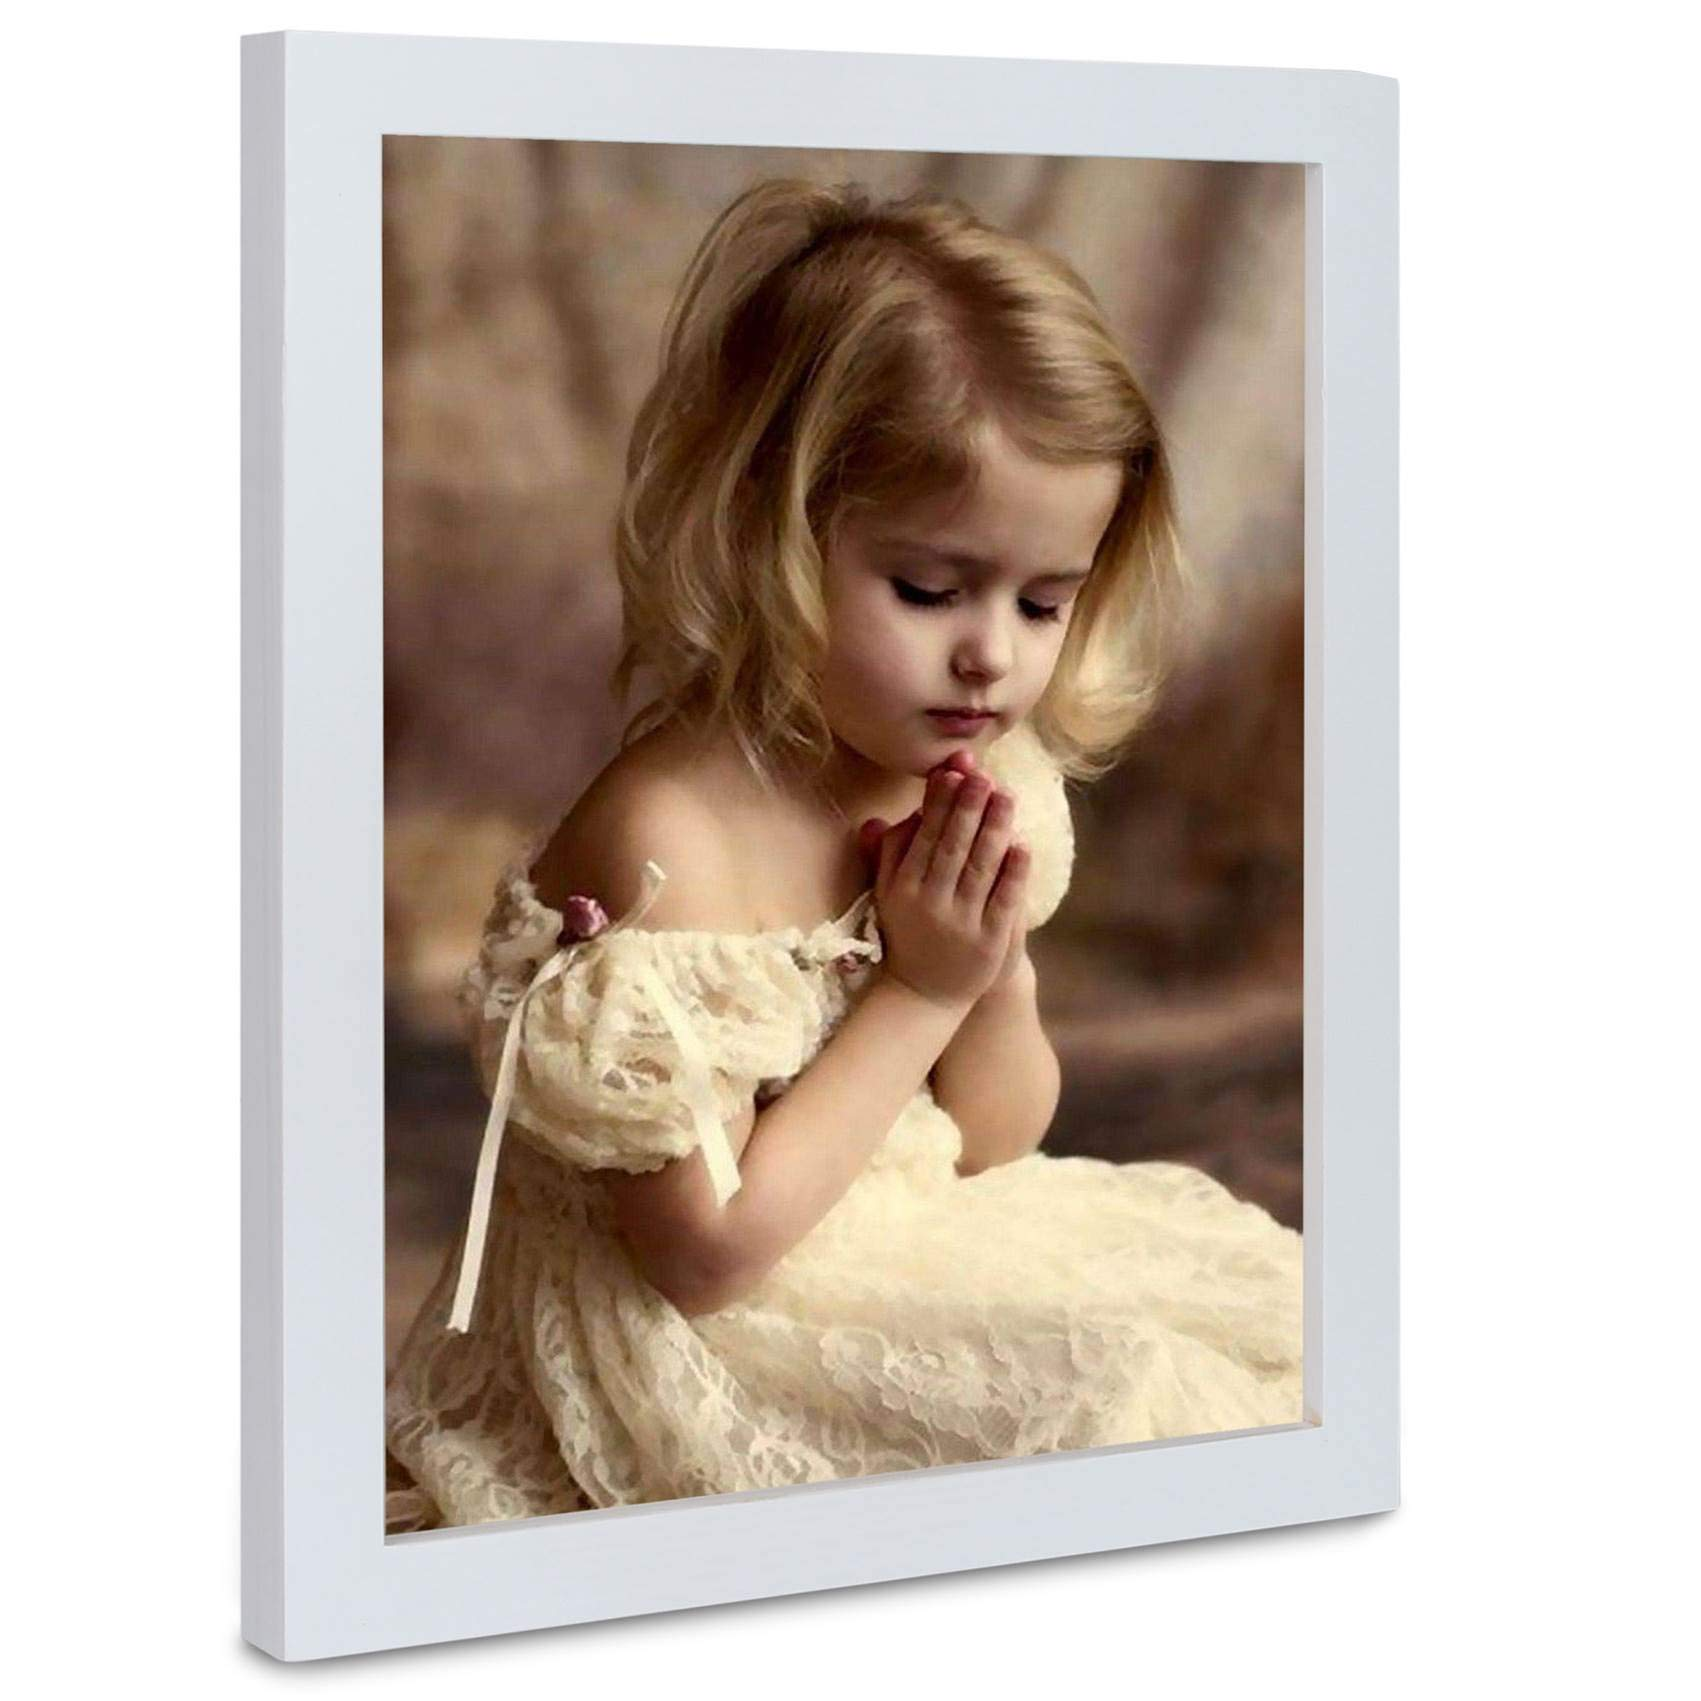 6 Packs 8x10 Picture White Wood Frames with Picture Hanging Kits for Wall Picture and Table Desk Top by ASelected by A+Selected